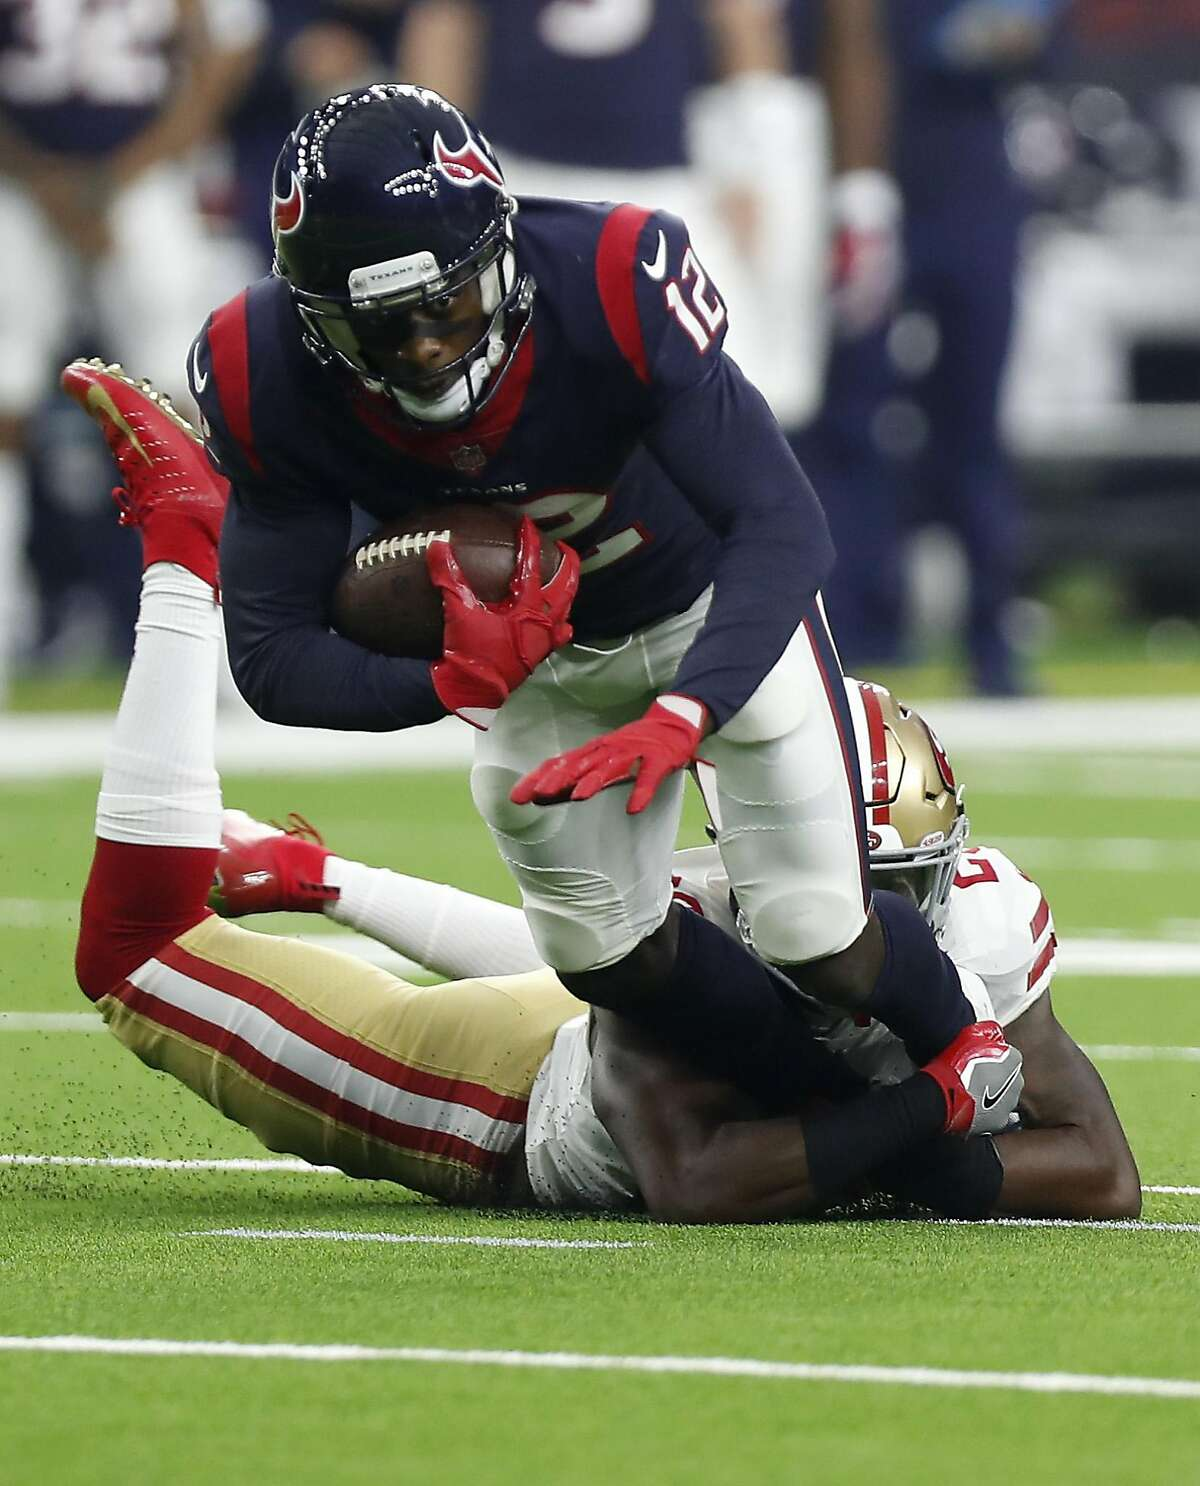 Houston Texans wide receiver Bruce Ellington (12) is stropped by San Francisco 49ers defensive back Jimmie Ward (20) during the first quarter of an NFL preseason football game at NRG Stadium on Saturday, Aug. 18, 2018, in Houston.